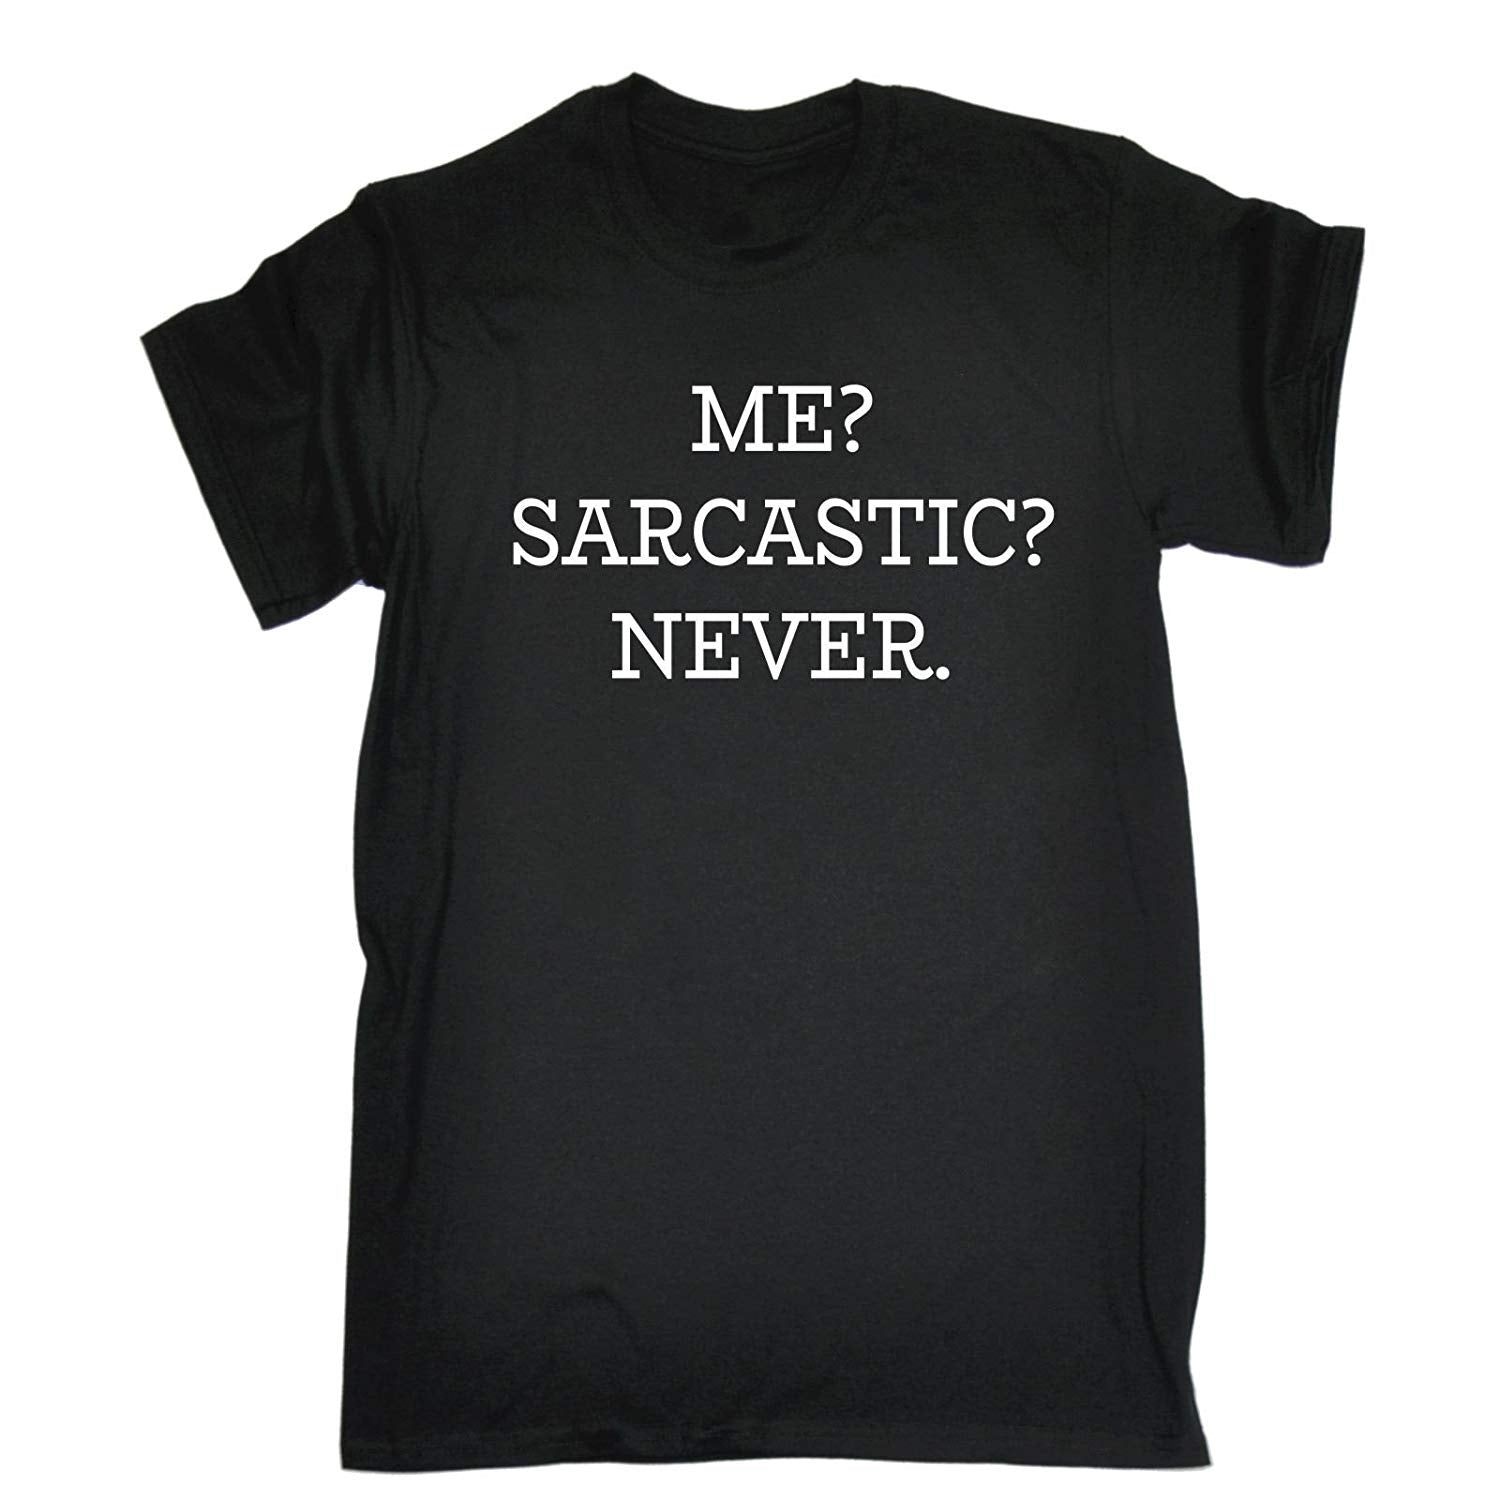 17d38faf7 123t Men's Me Sarcastic Never T-SHIRT Funny Christmas Casual Birthday Tee